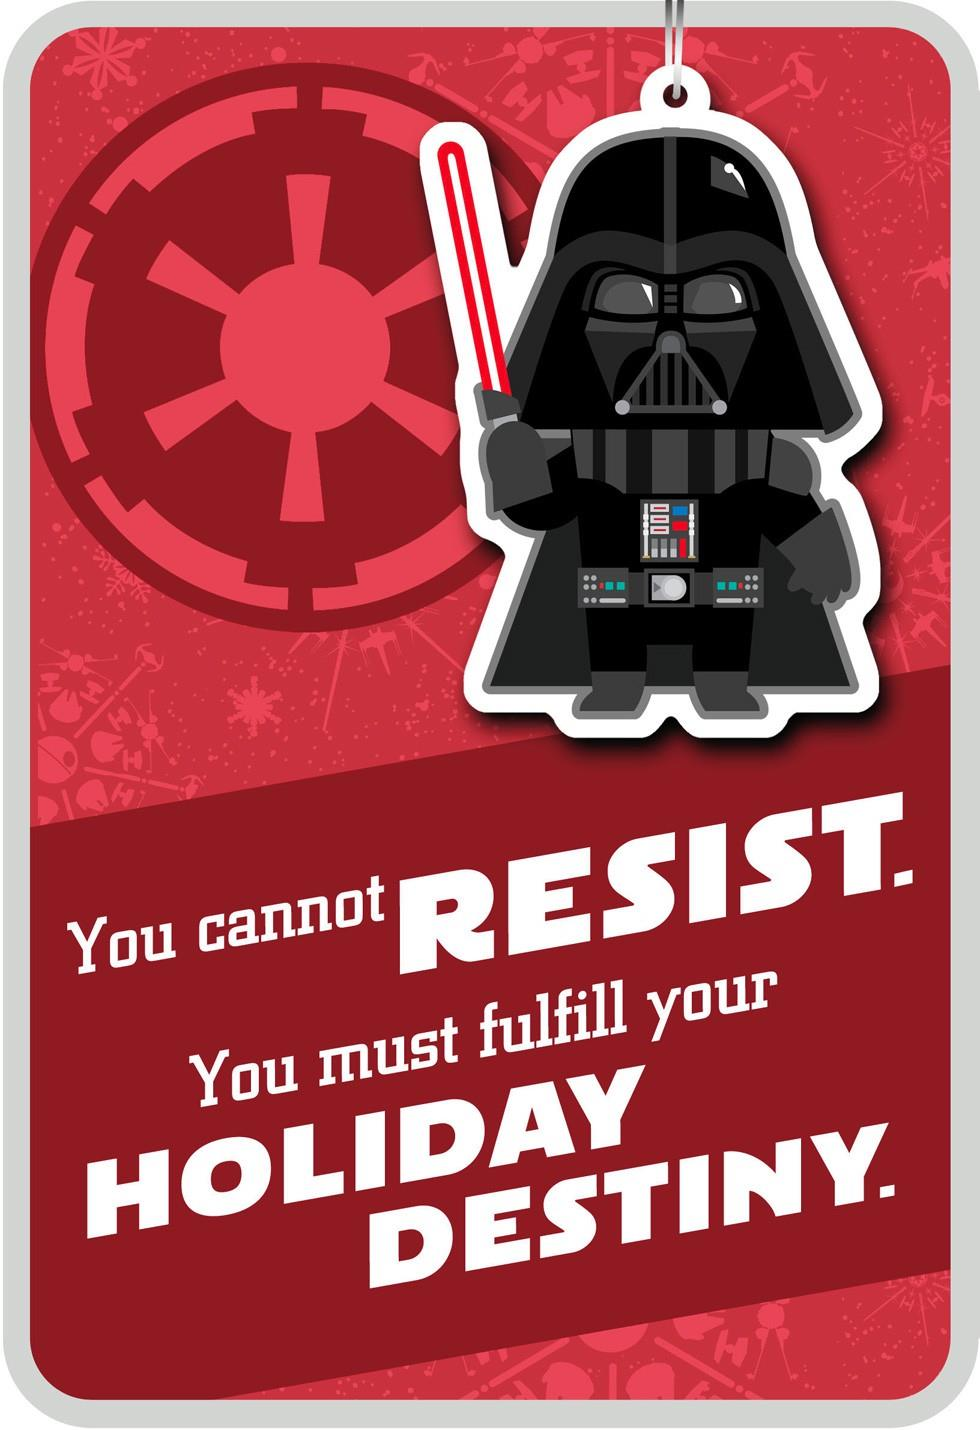 merry side darth vader u2122 christmas card with ornament